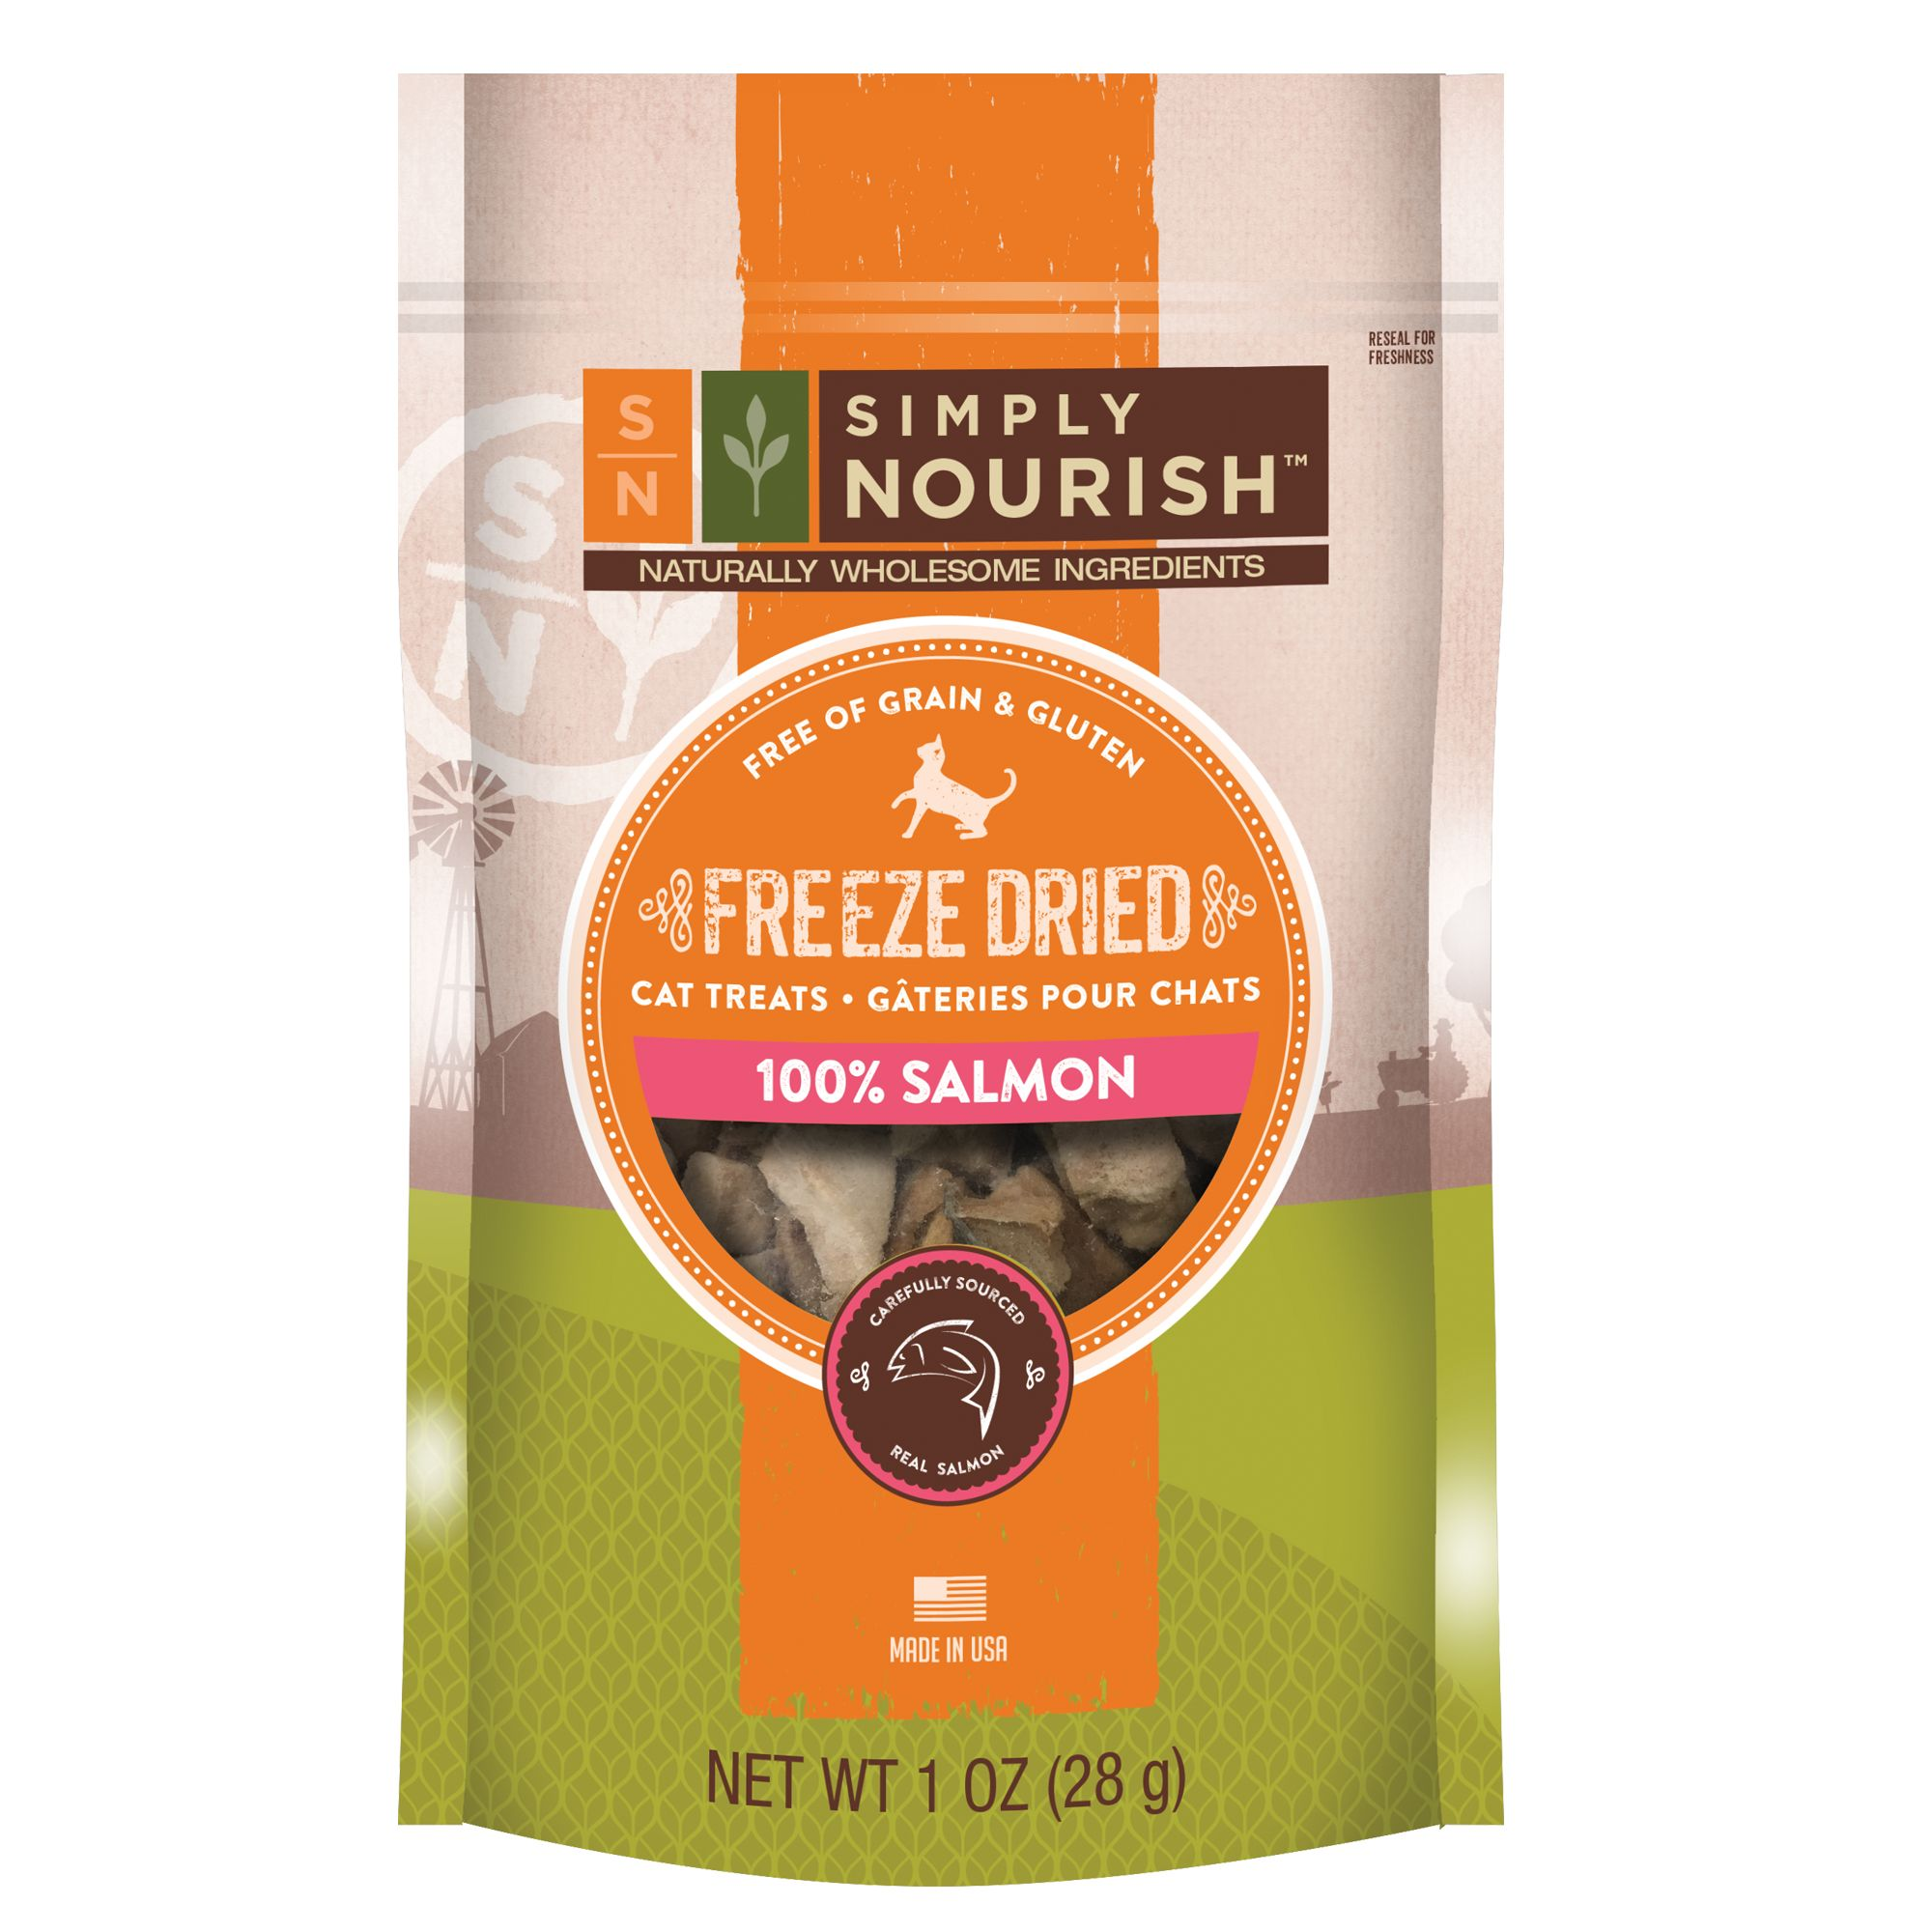 Simply Nourish, Freeze Dried Cat Treat - Natural, Grain and Gluten Free, Salmon size: 1 Oz 5264058